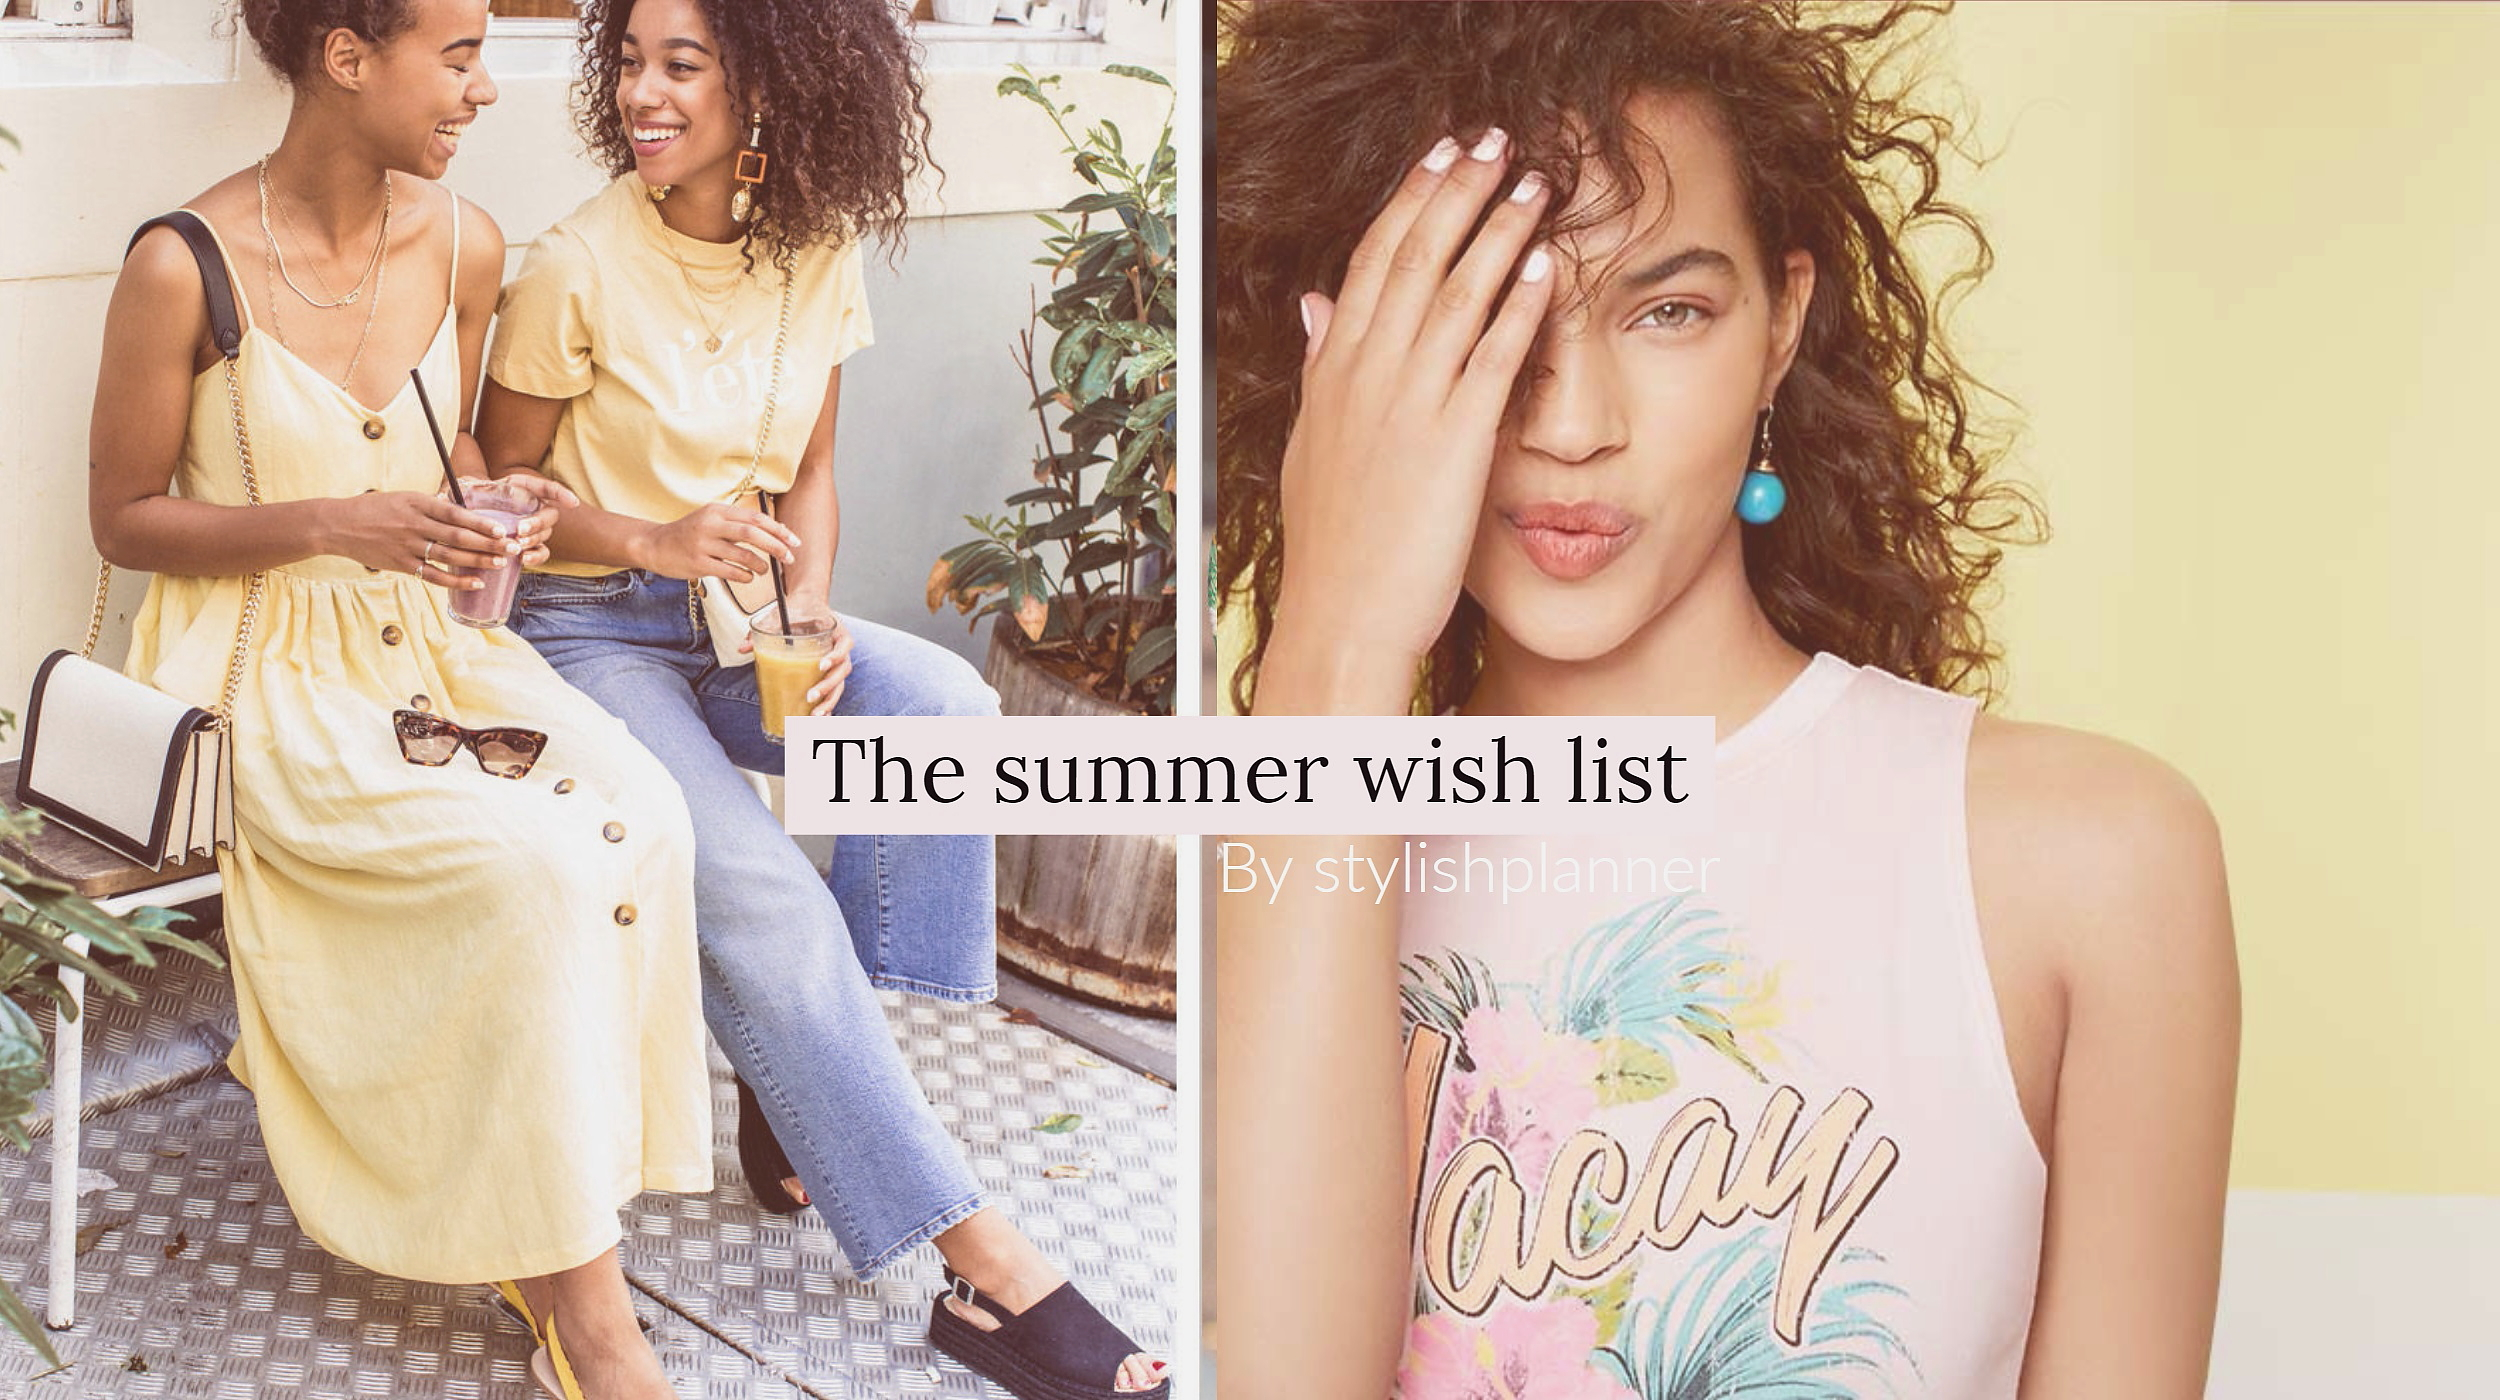 The summer wish list